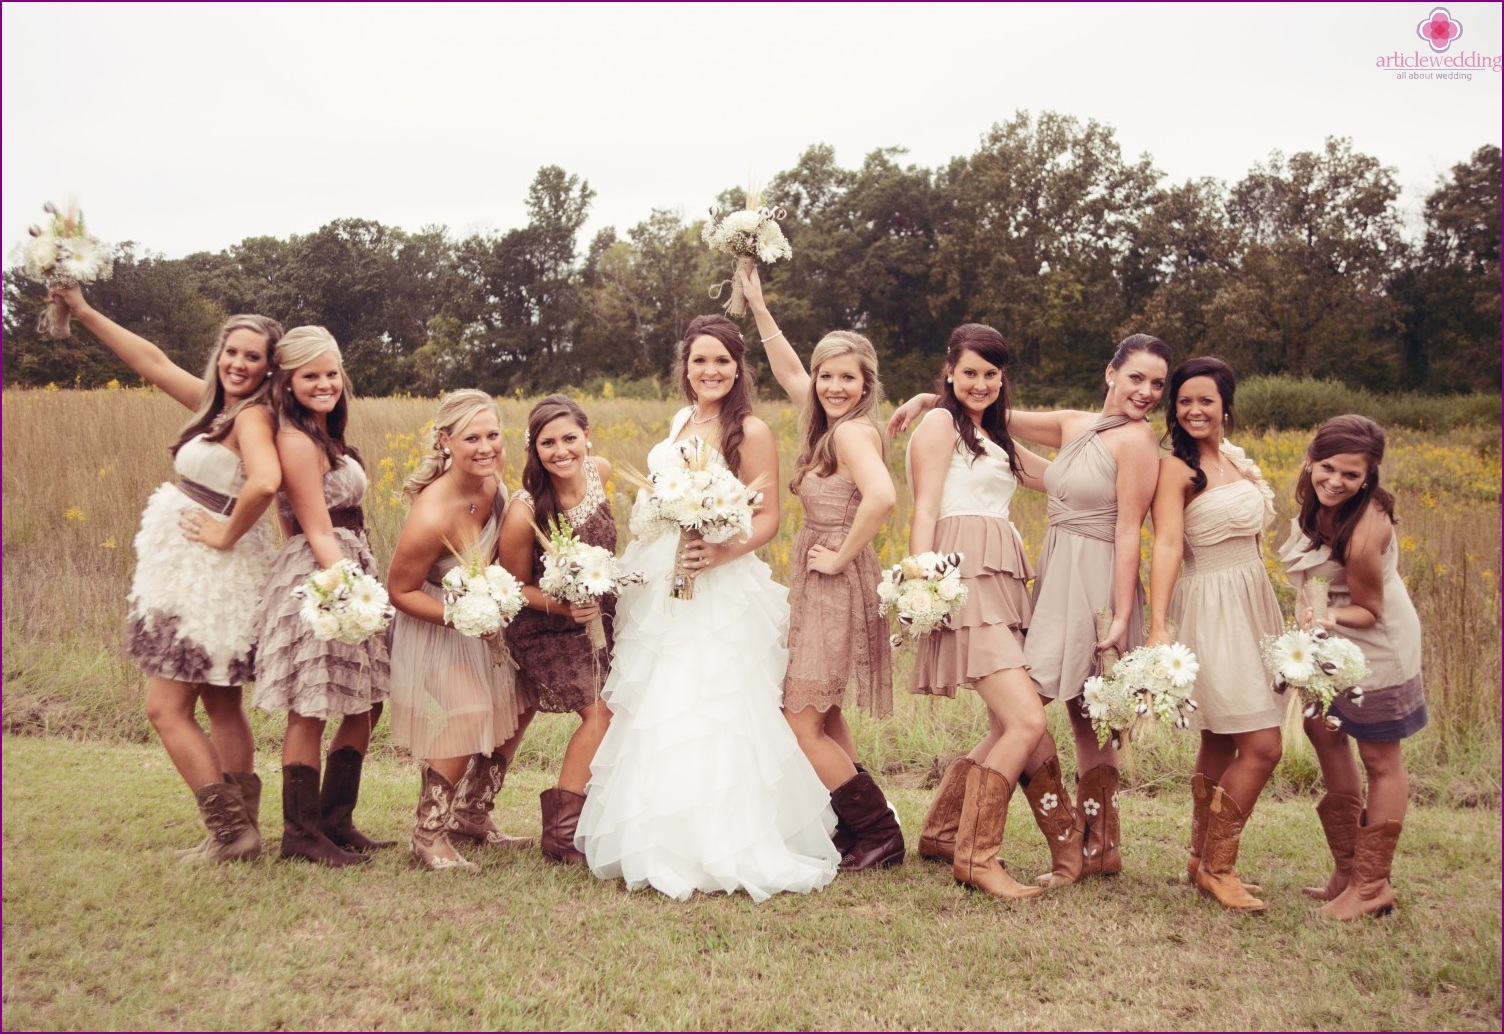 The bride and her bridesmaids Rustic